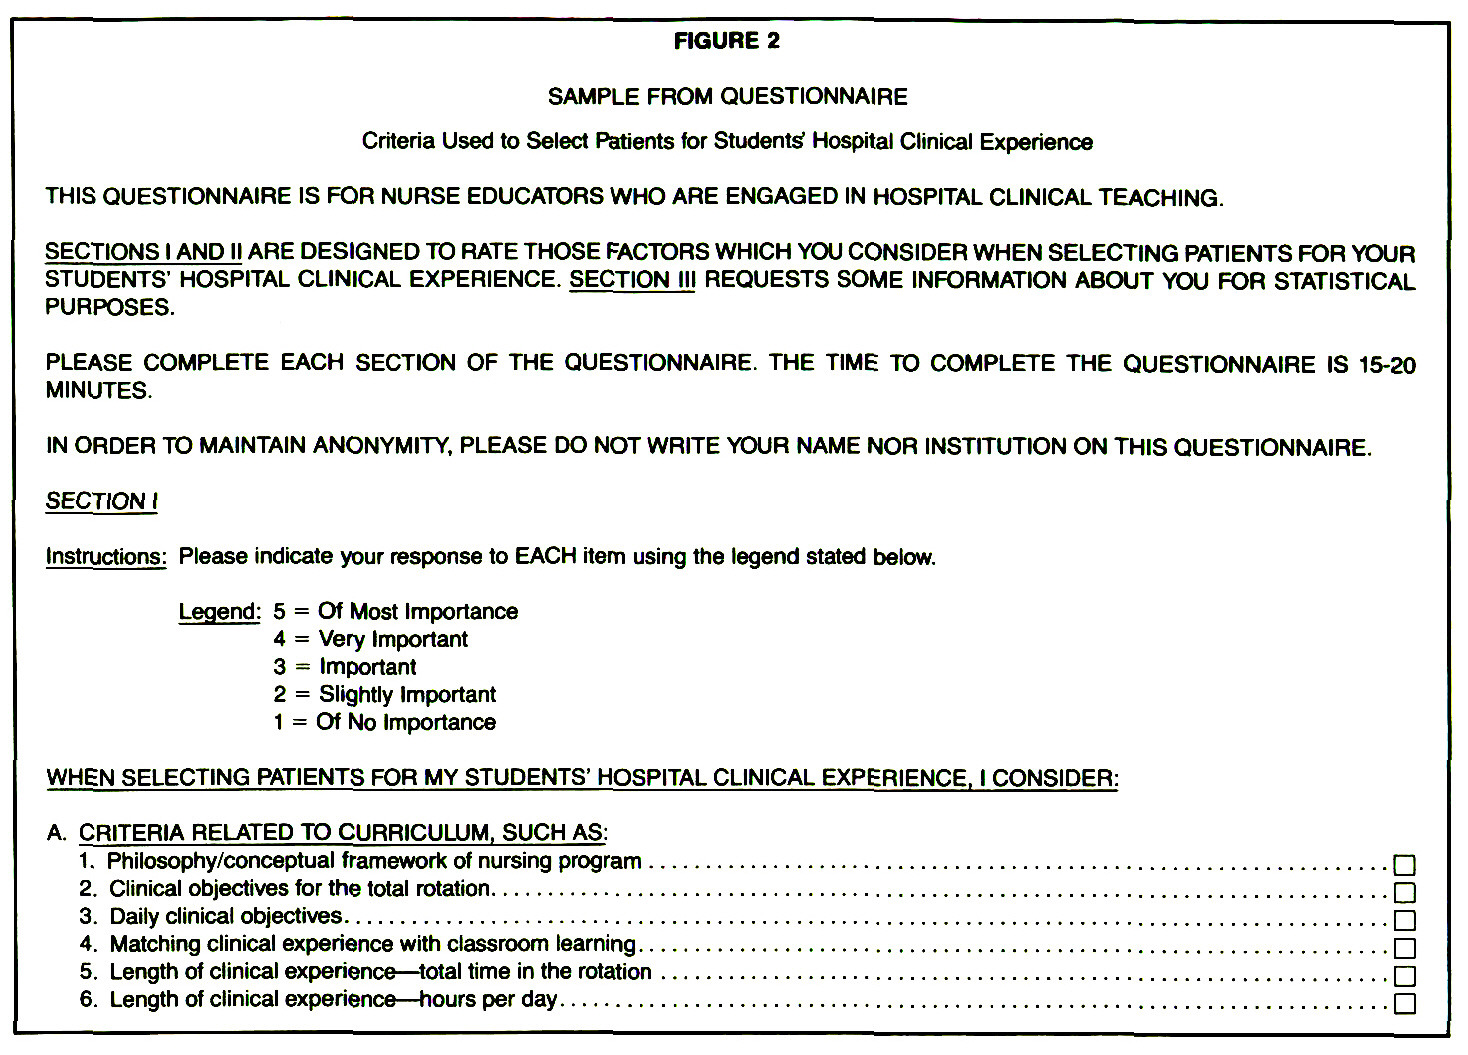 FIGURE 2SAMPLE FROM QUESTIONNAIRE